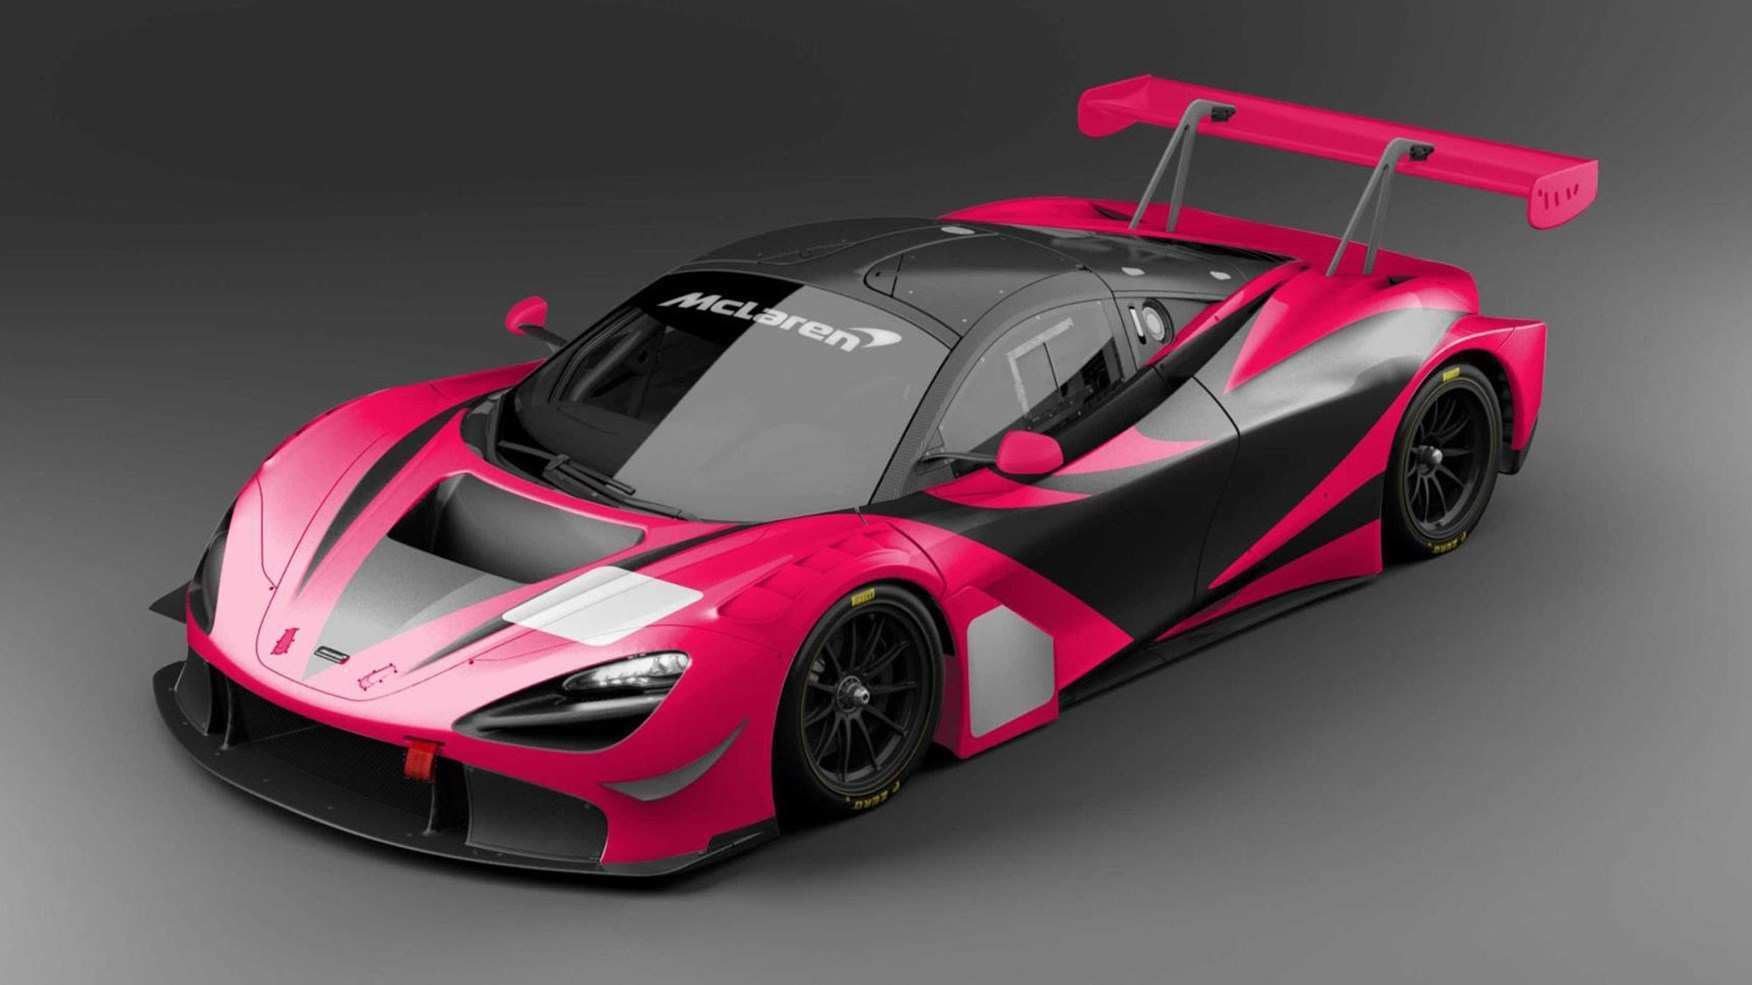 34 Concept of 2019 Mclaren 720S Gt3 Redesign and Concept with 2019 Mclaren 720S Gt3